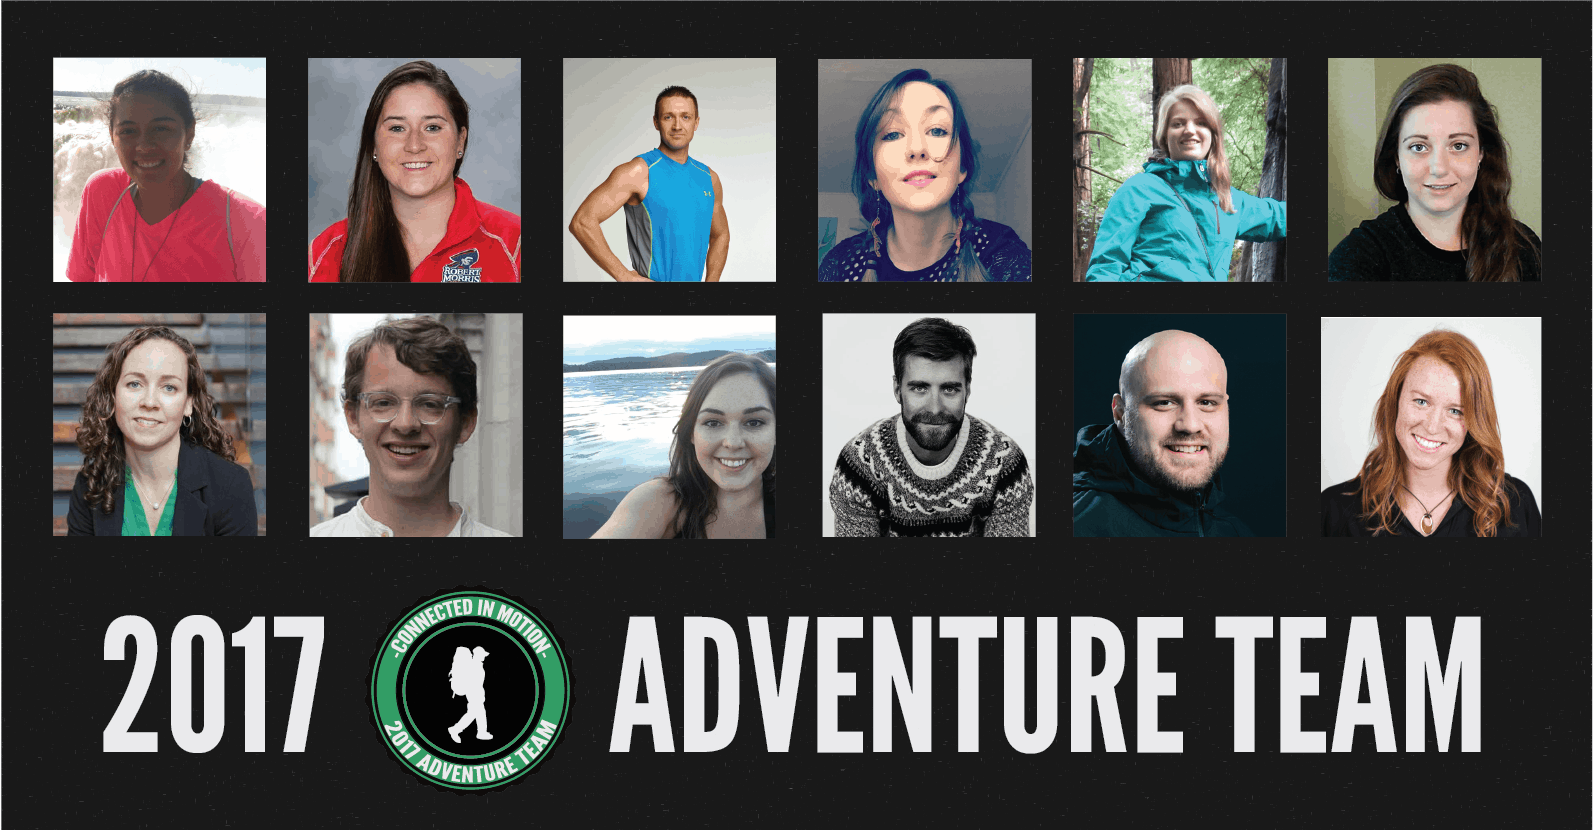 2017 Adventure Team Photo Blog